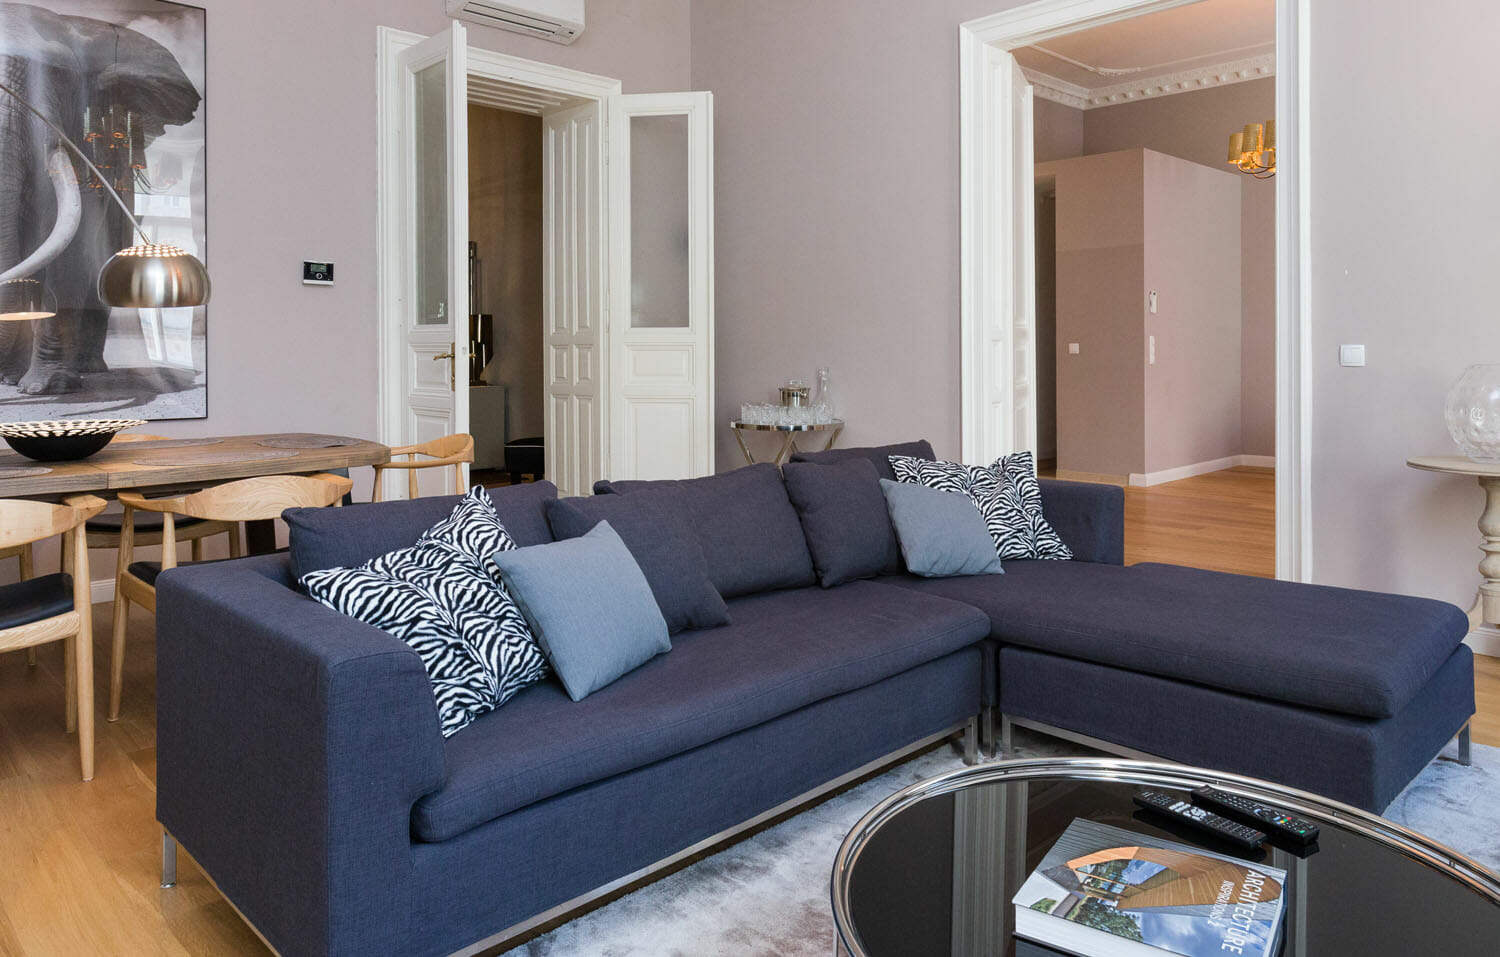 Pure Luxury in the Center of Vienna. First class 3 bedroom luxury apartment with space for up to 6 people.Apartments size in m²: 140 District: 1010 Inner City Bedroom: 3. Internet, Digital Cable TV,